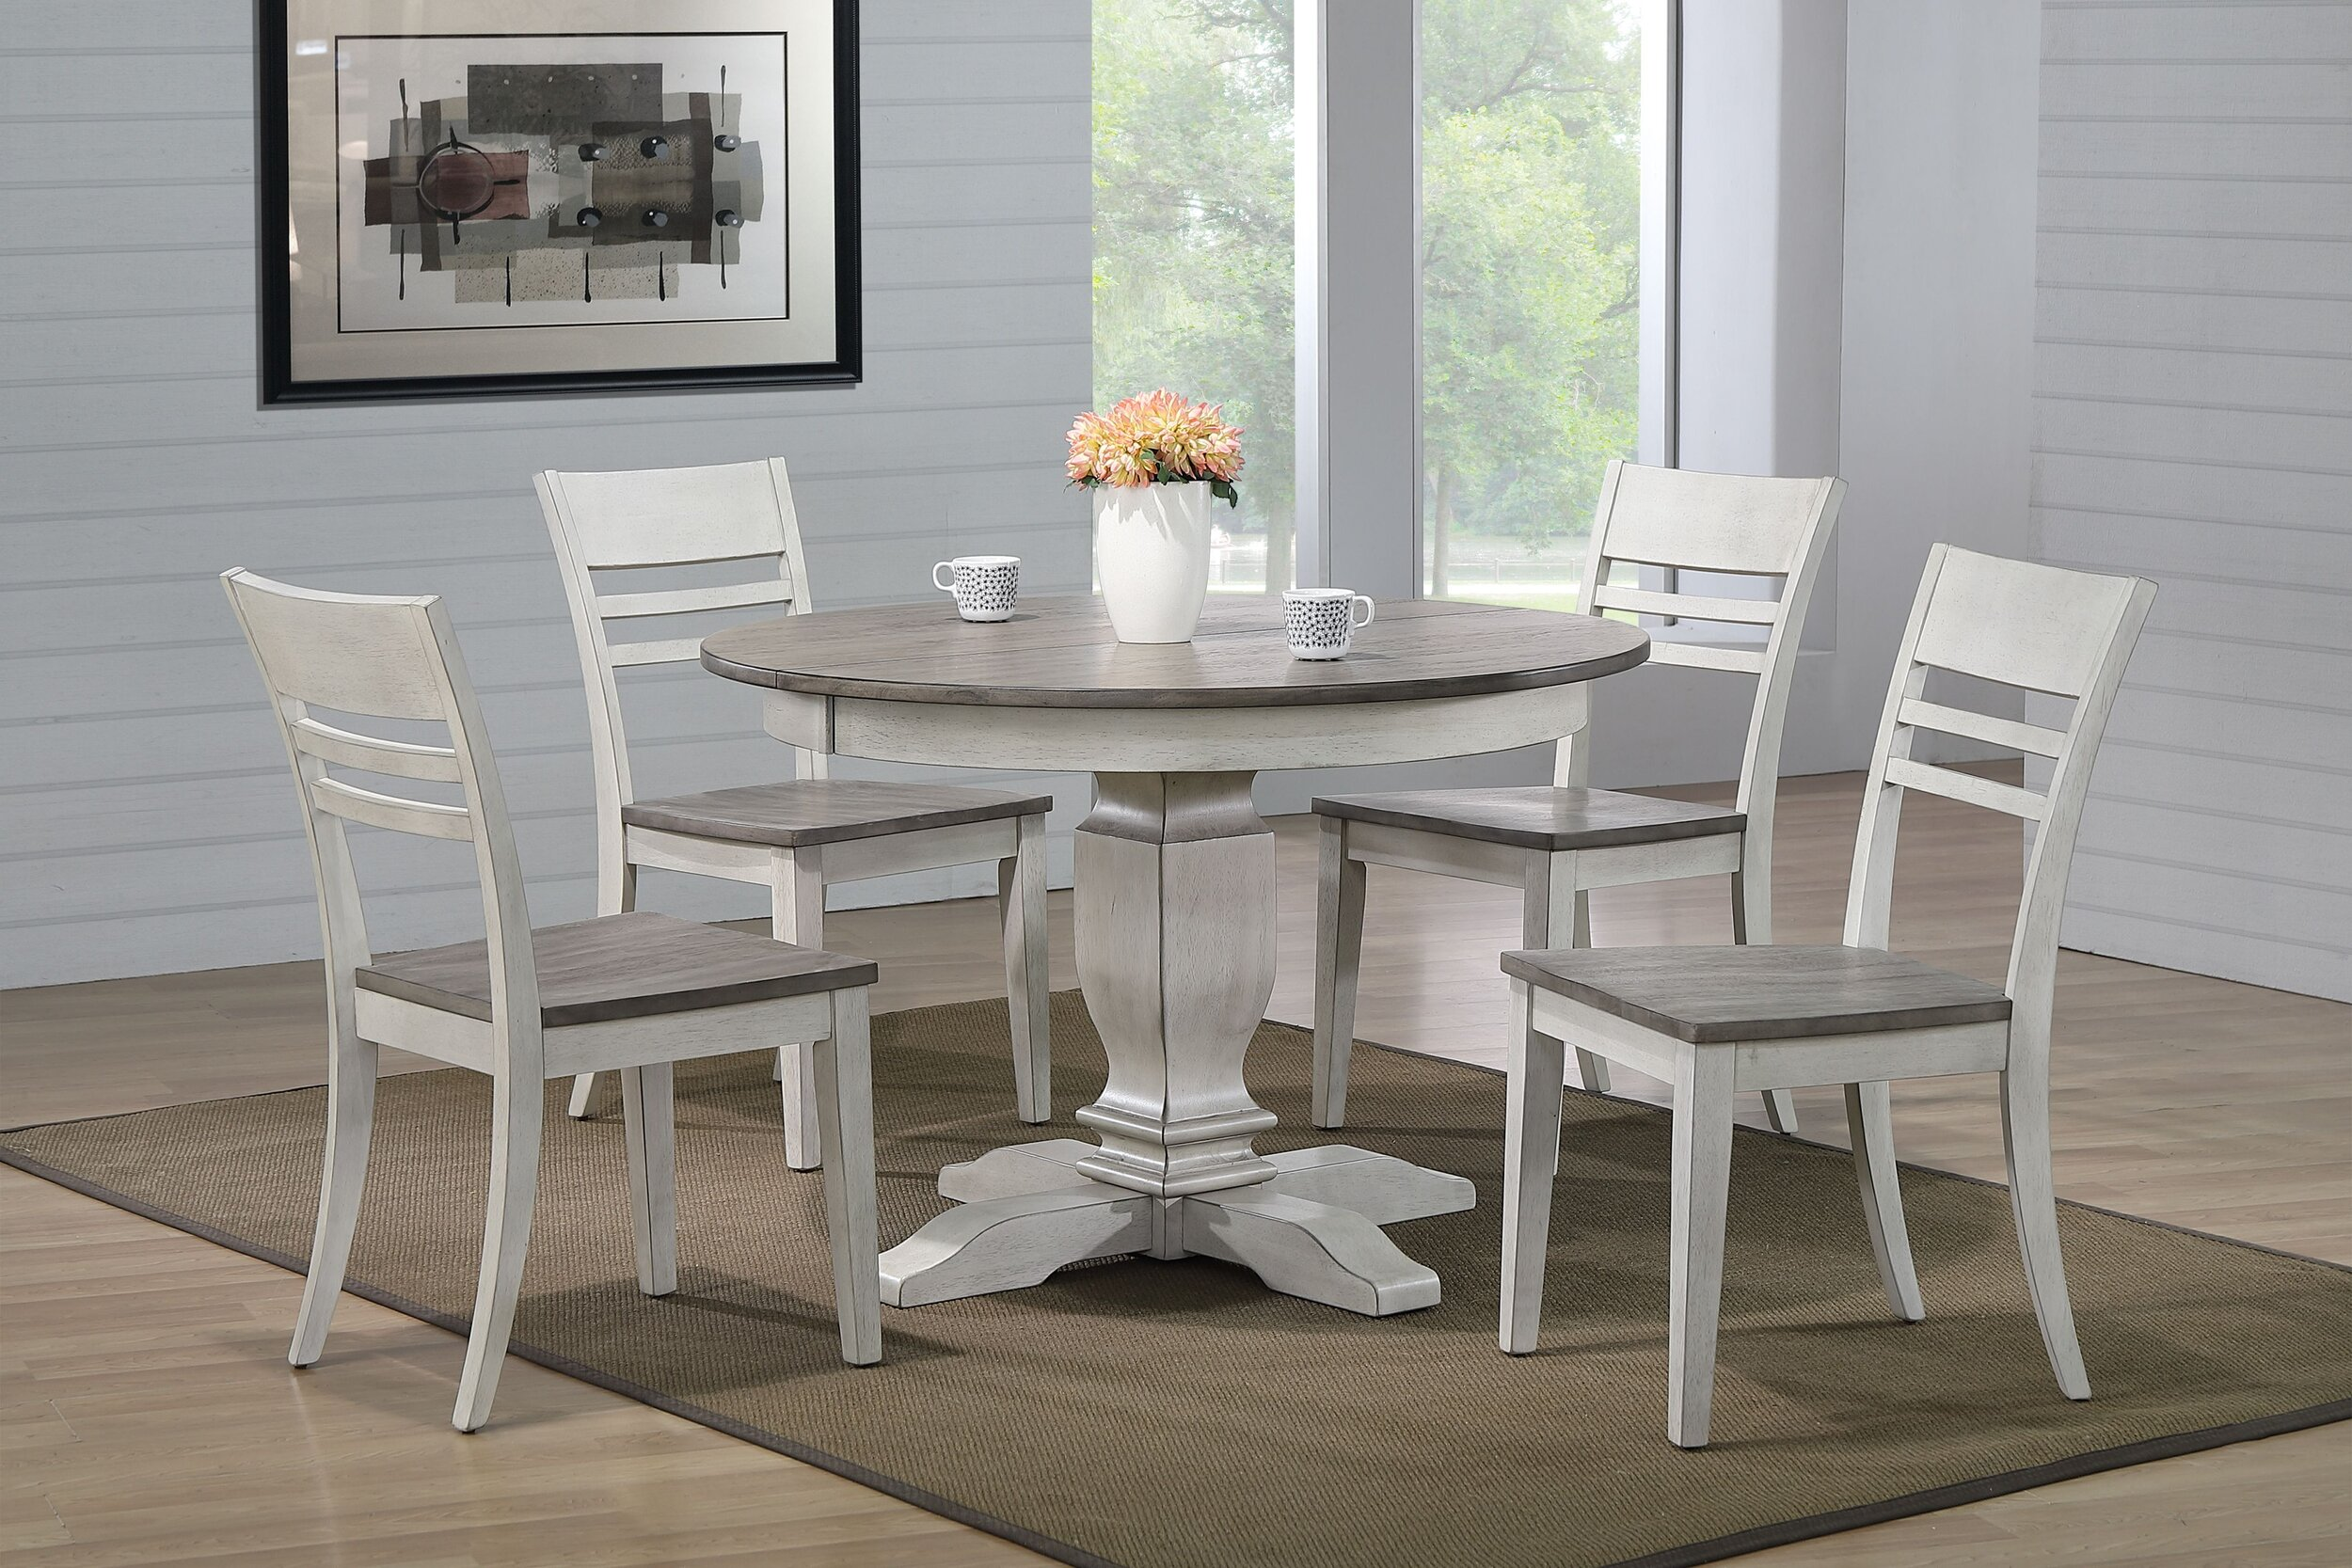 "45""x45""x63"" Transitional Ash & Stormy White (5-Piece Dining Set)"